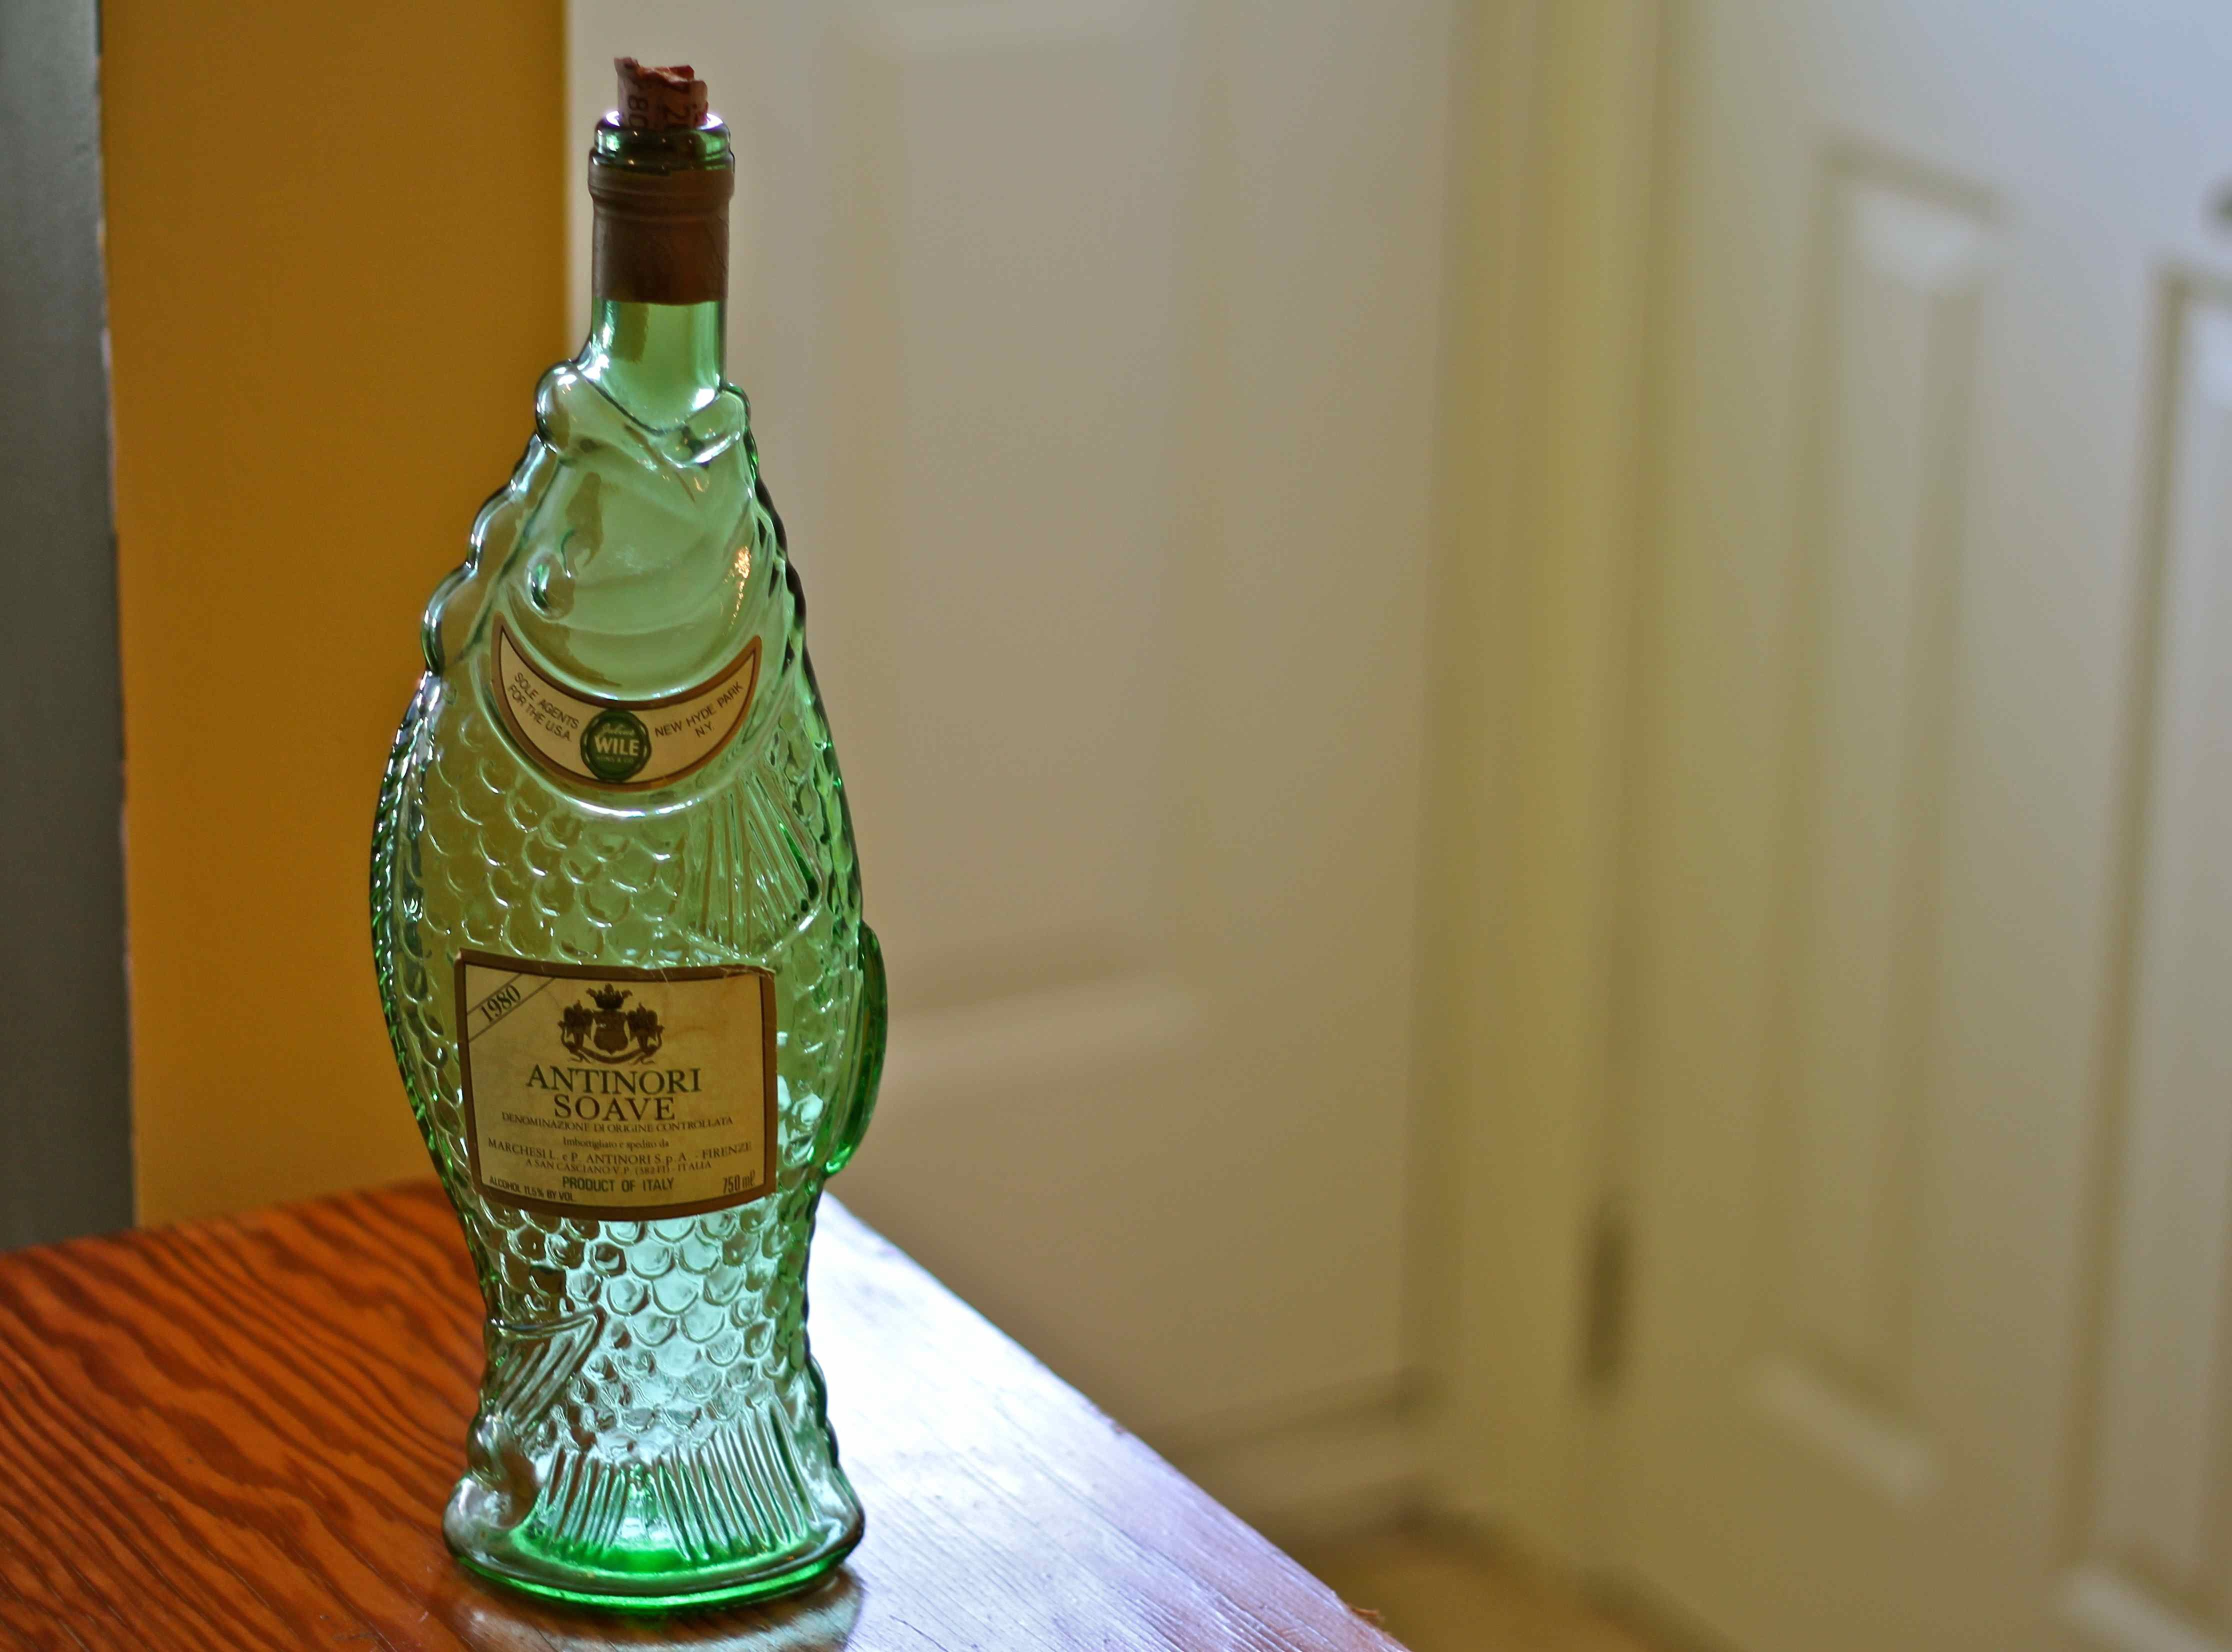 Fish shaped antinori soave italy green glass wine bottle for Fish wine bottle